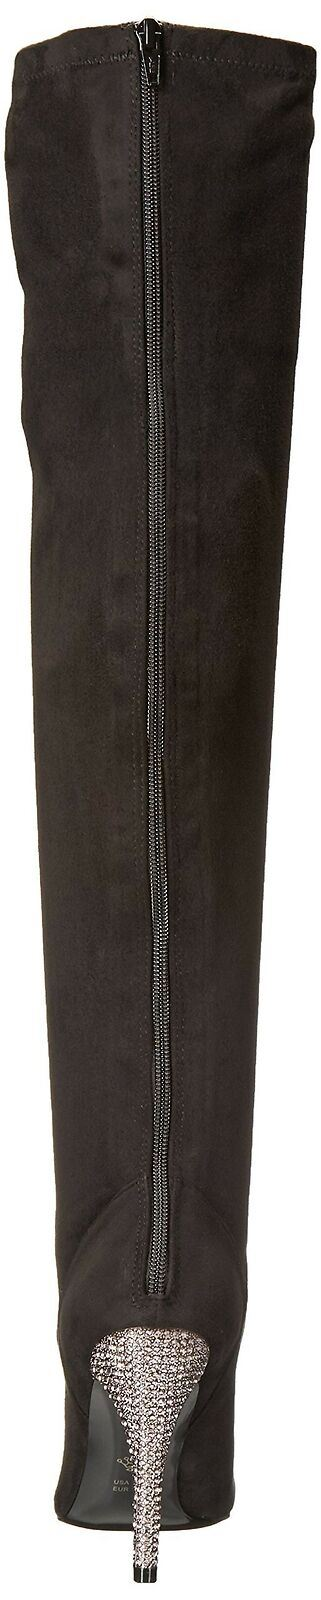 Nina Women's Rocklin-Fy Slouch Boot, Noir Stret Glam SD/Stone, 8.5 M US